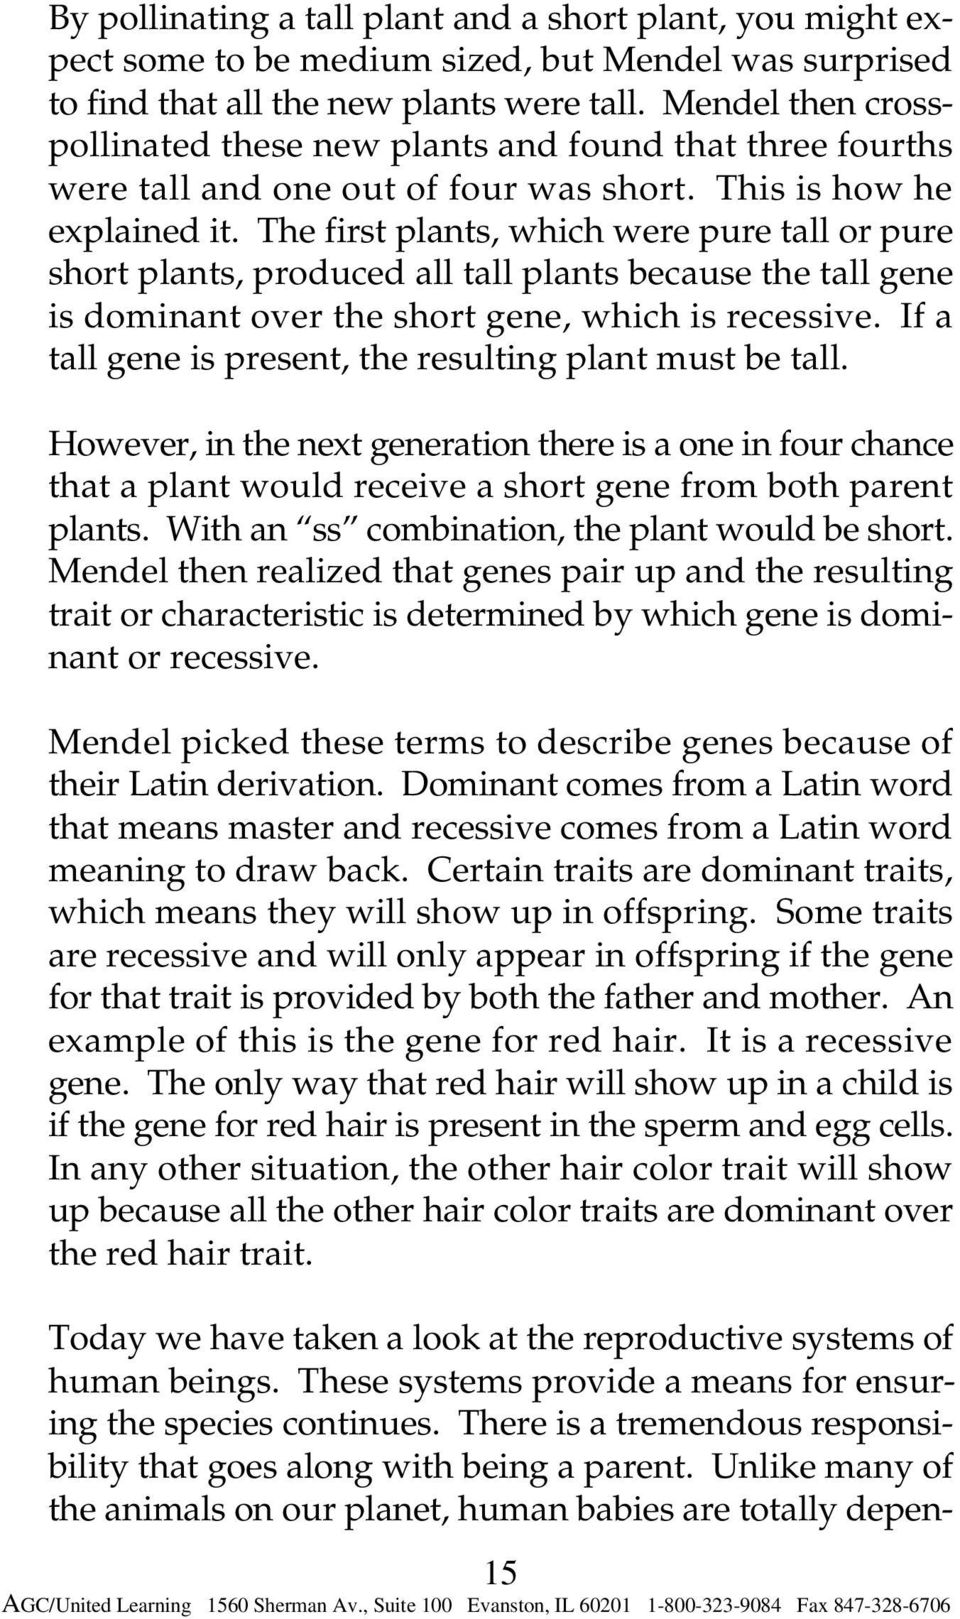 The first plants, which were pure tall or pure short plants, produced all tall plants because the tall gene is dominant over the short gene, which is recessive.